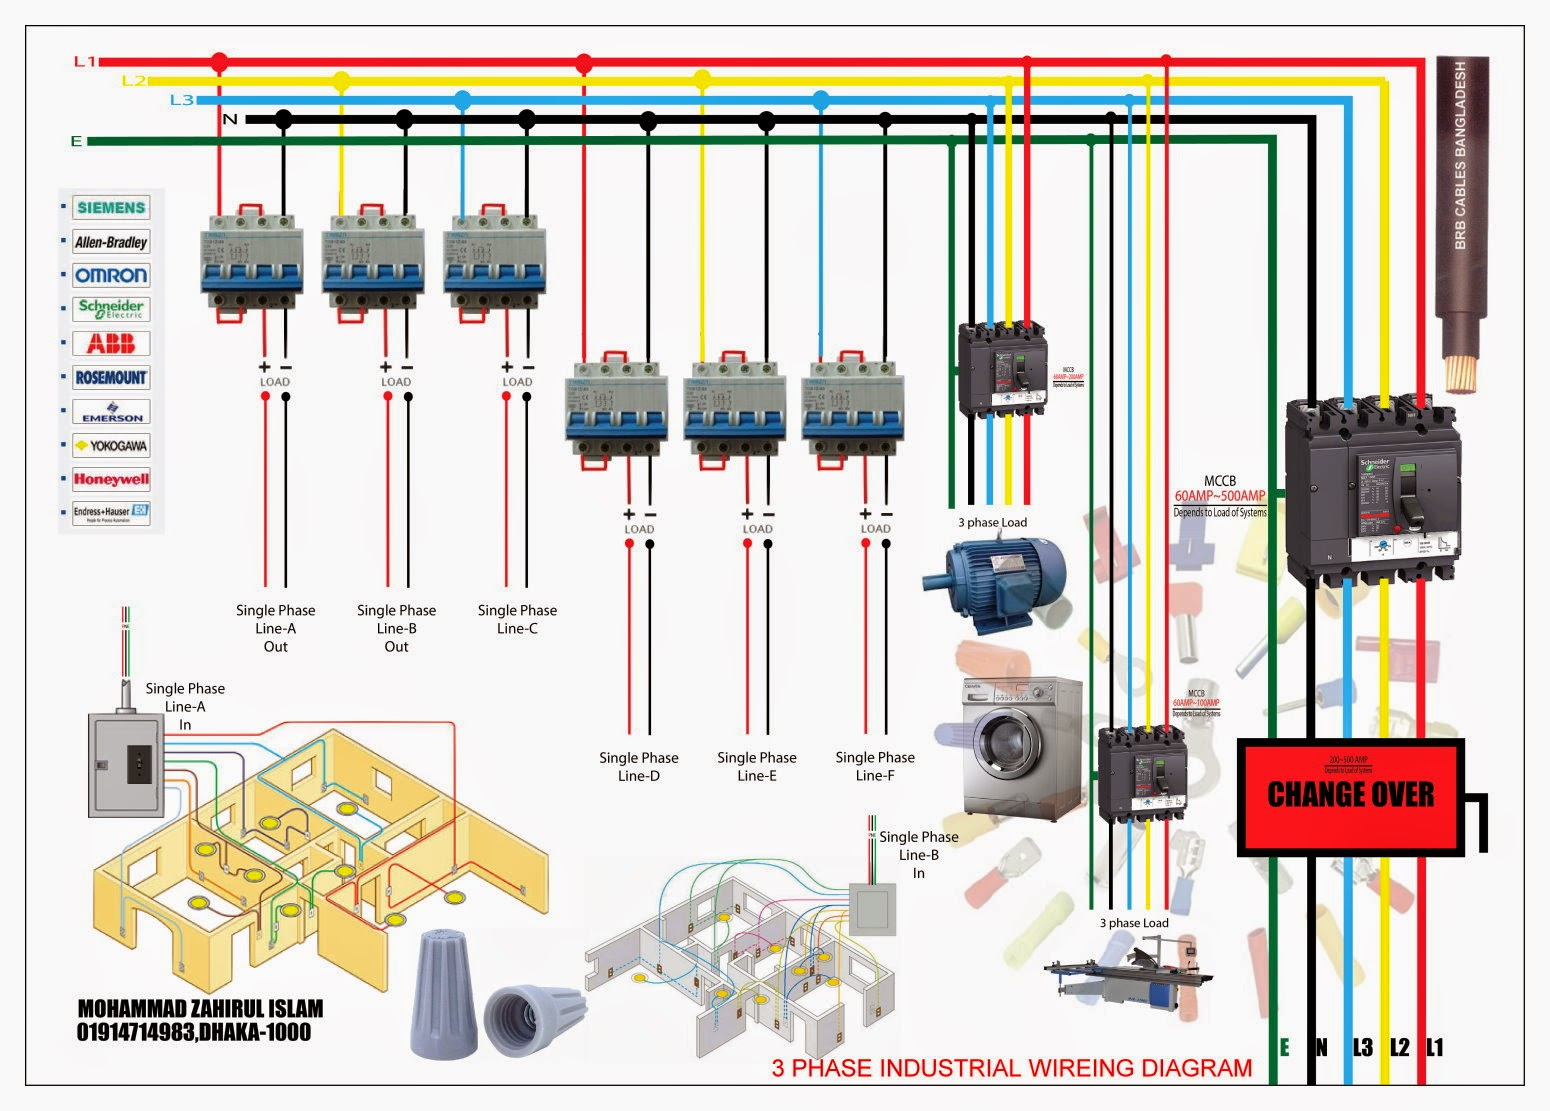 electrical stop start station wiring diagram dimmer switch l1 l2 technology mohammad zahirul islam